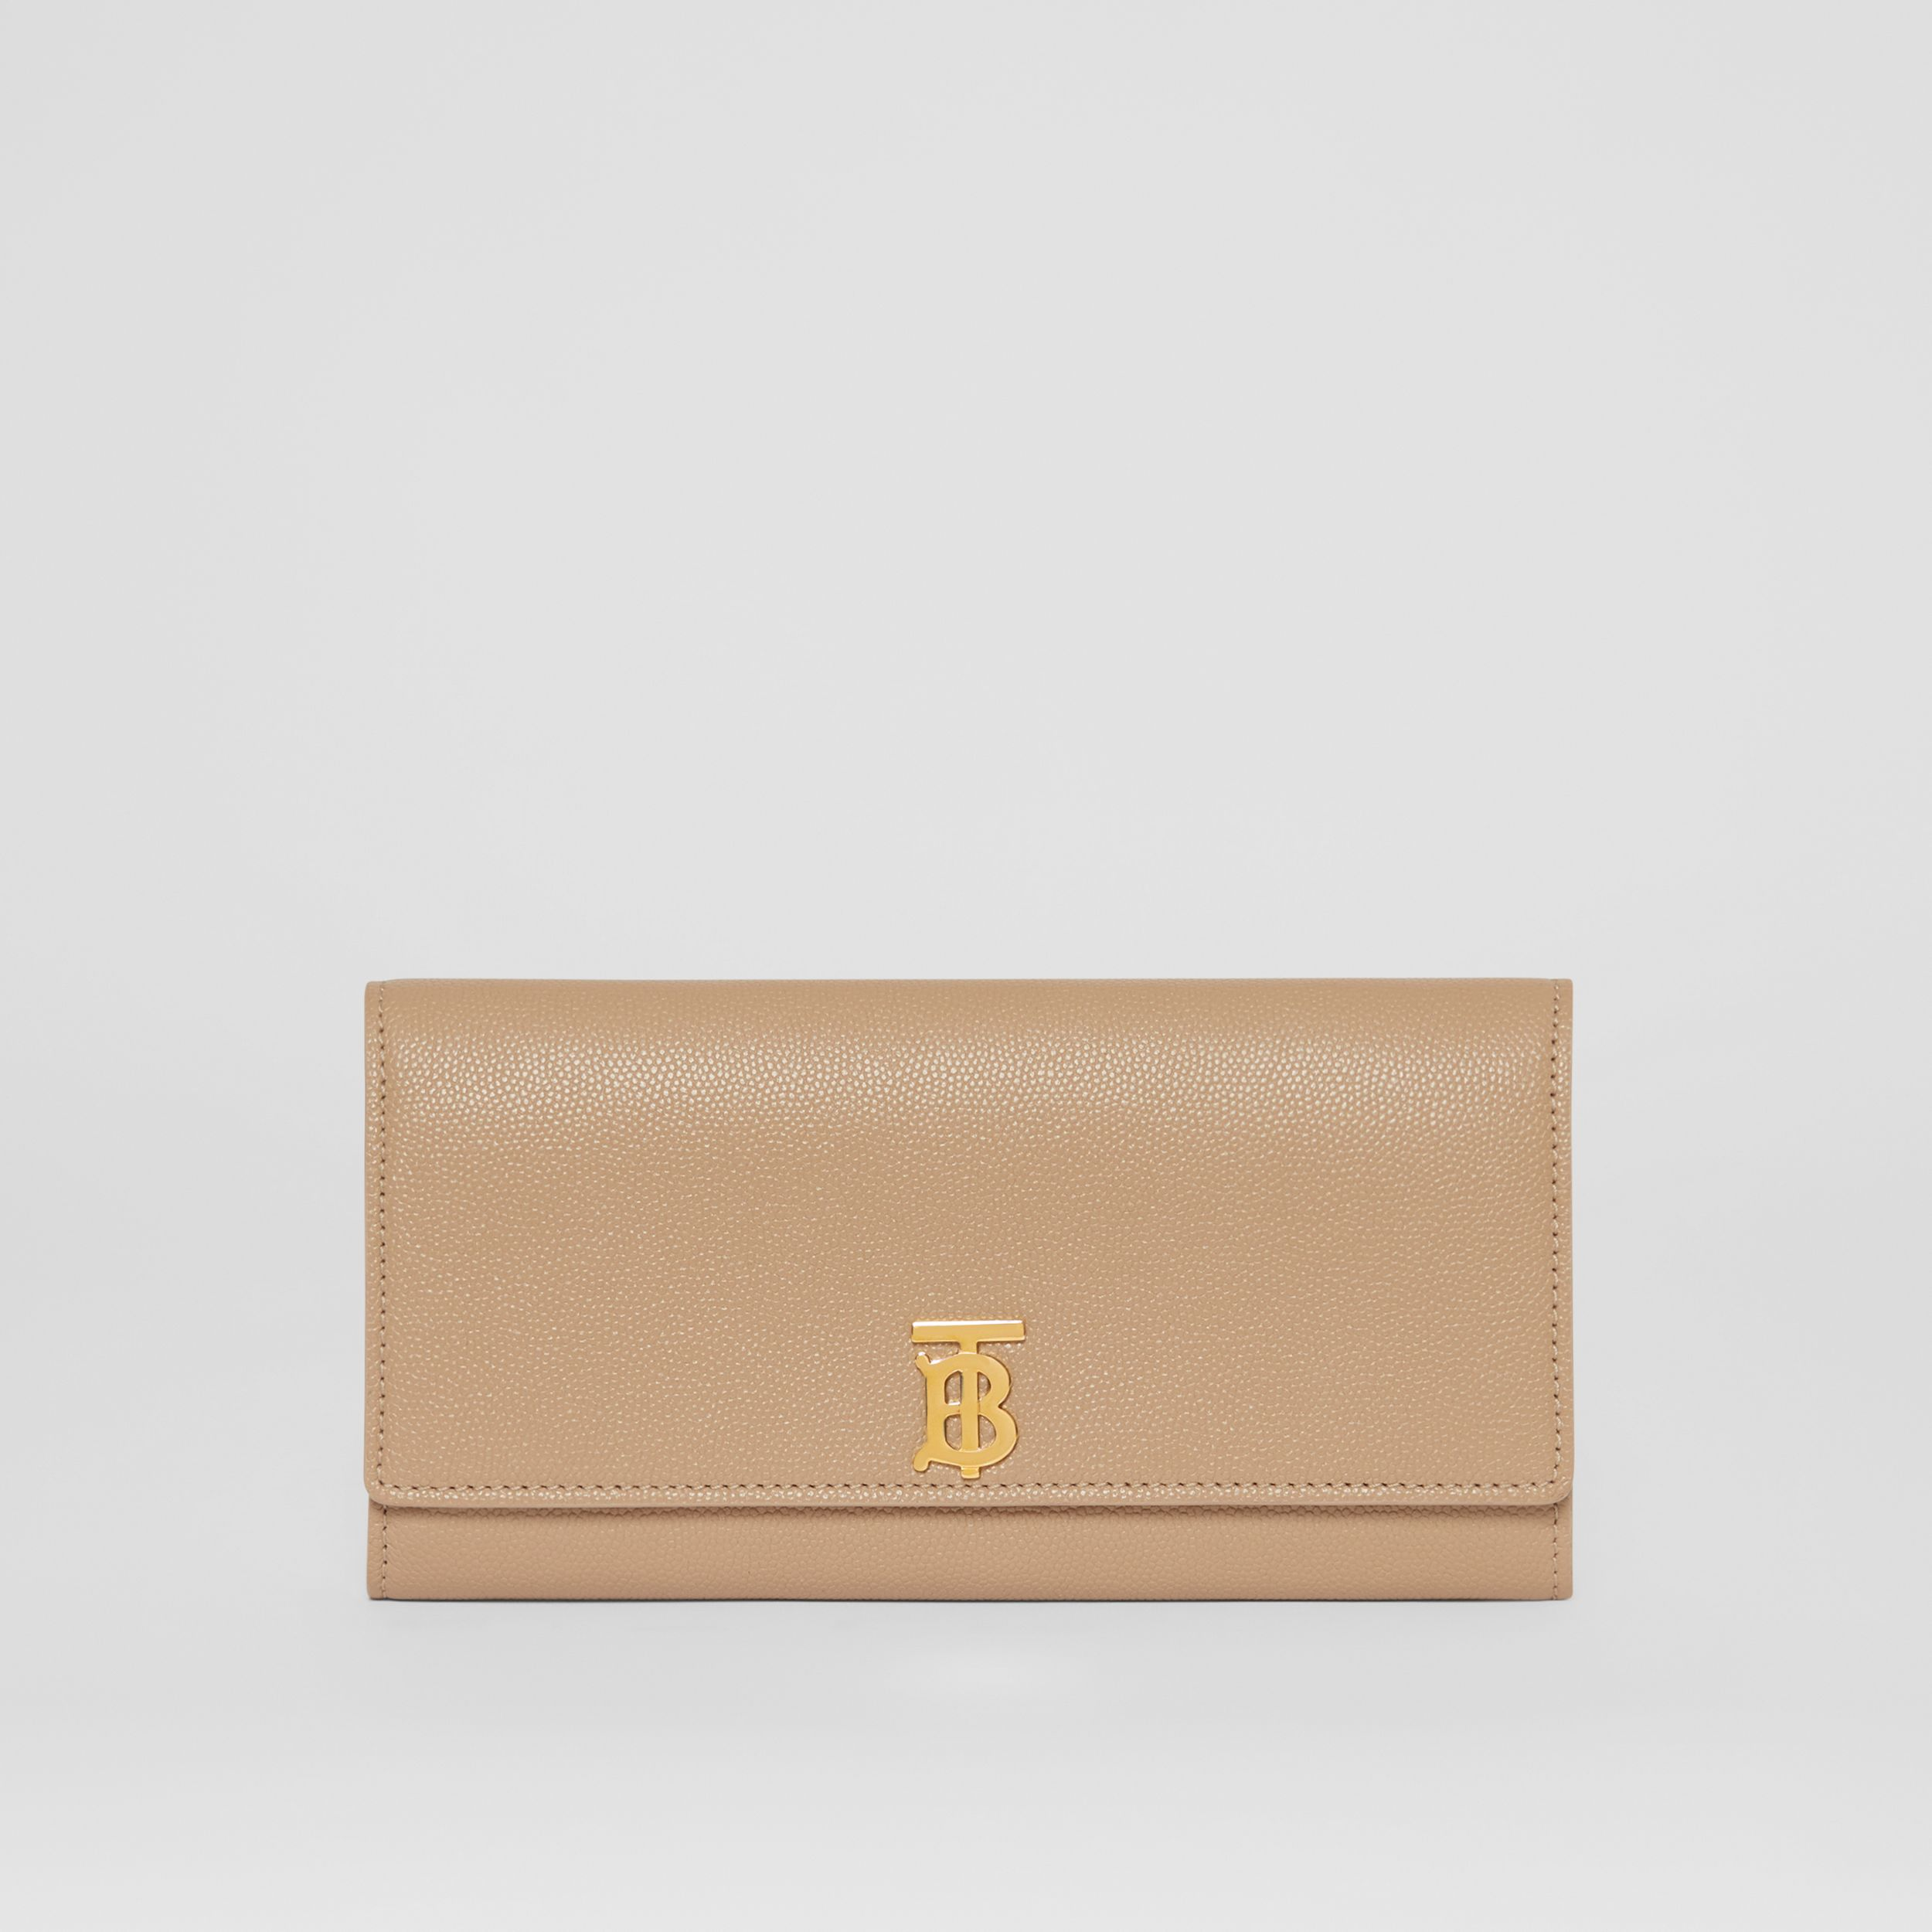 Monogram Motif Grainy Leather Continental Wallet in Archive Beige - Women | Burberry Hong Kong S.A.R - 1